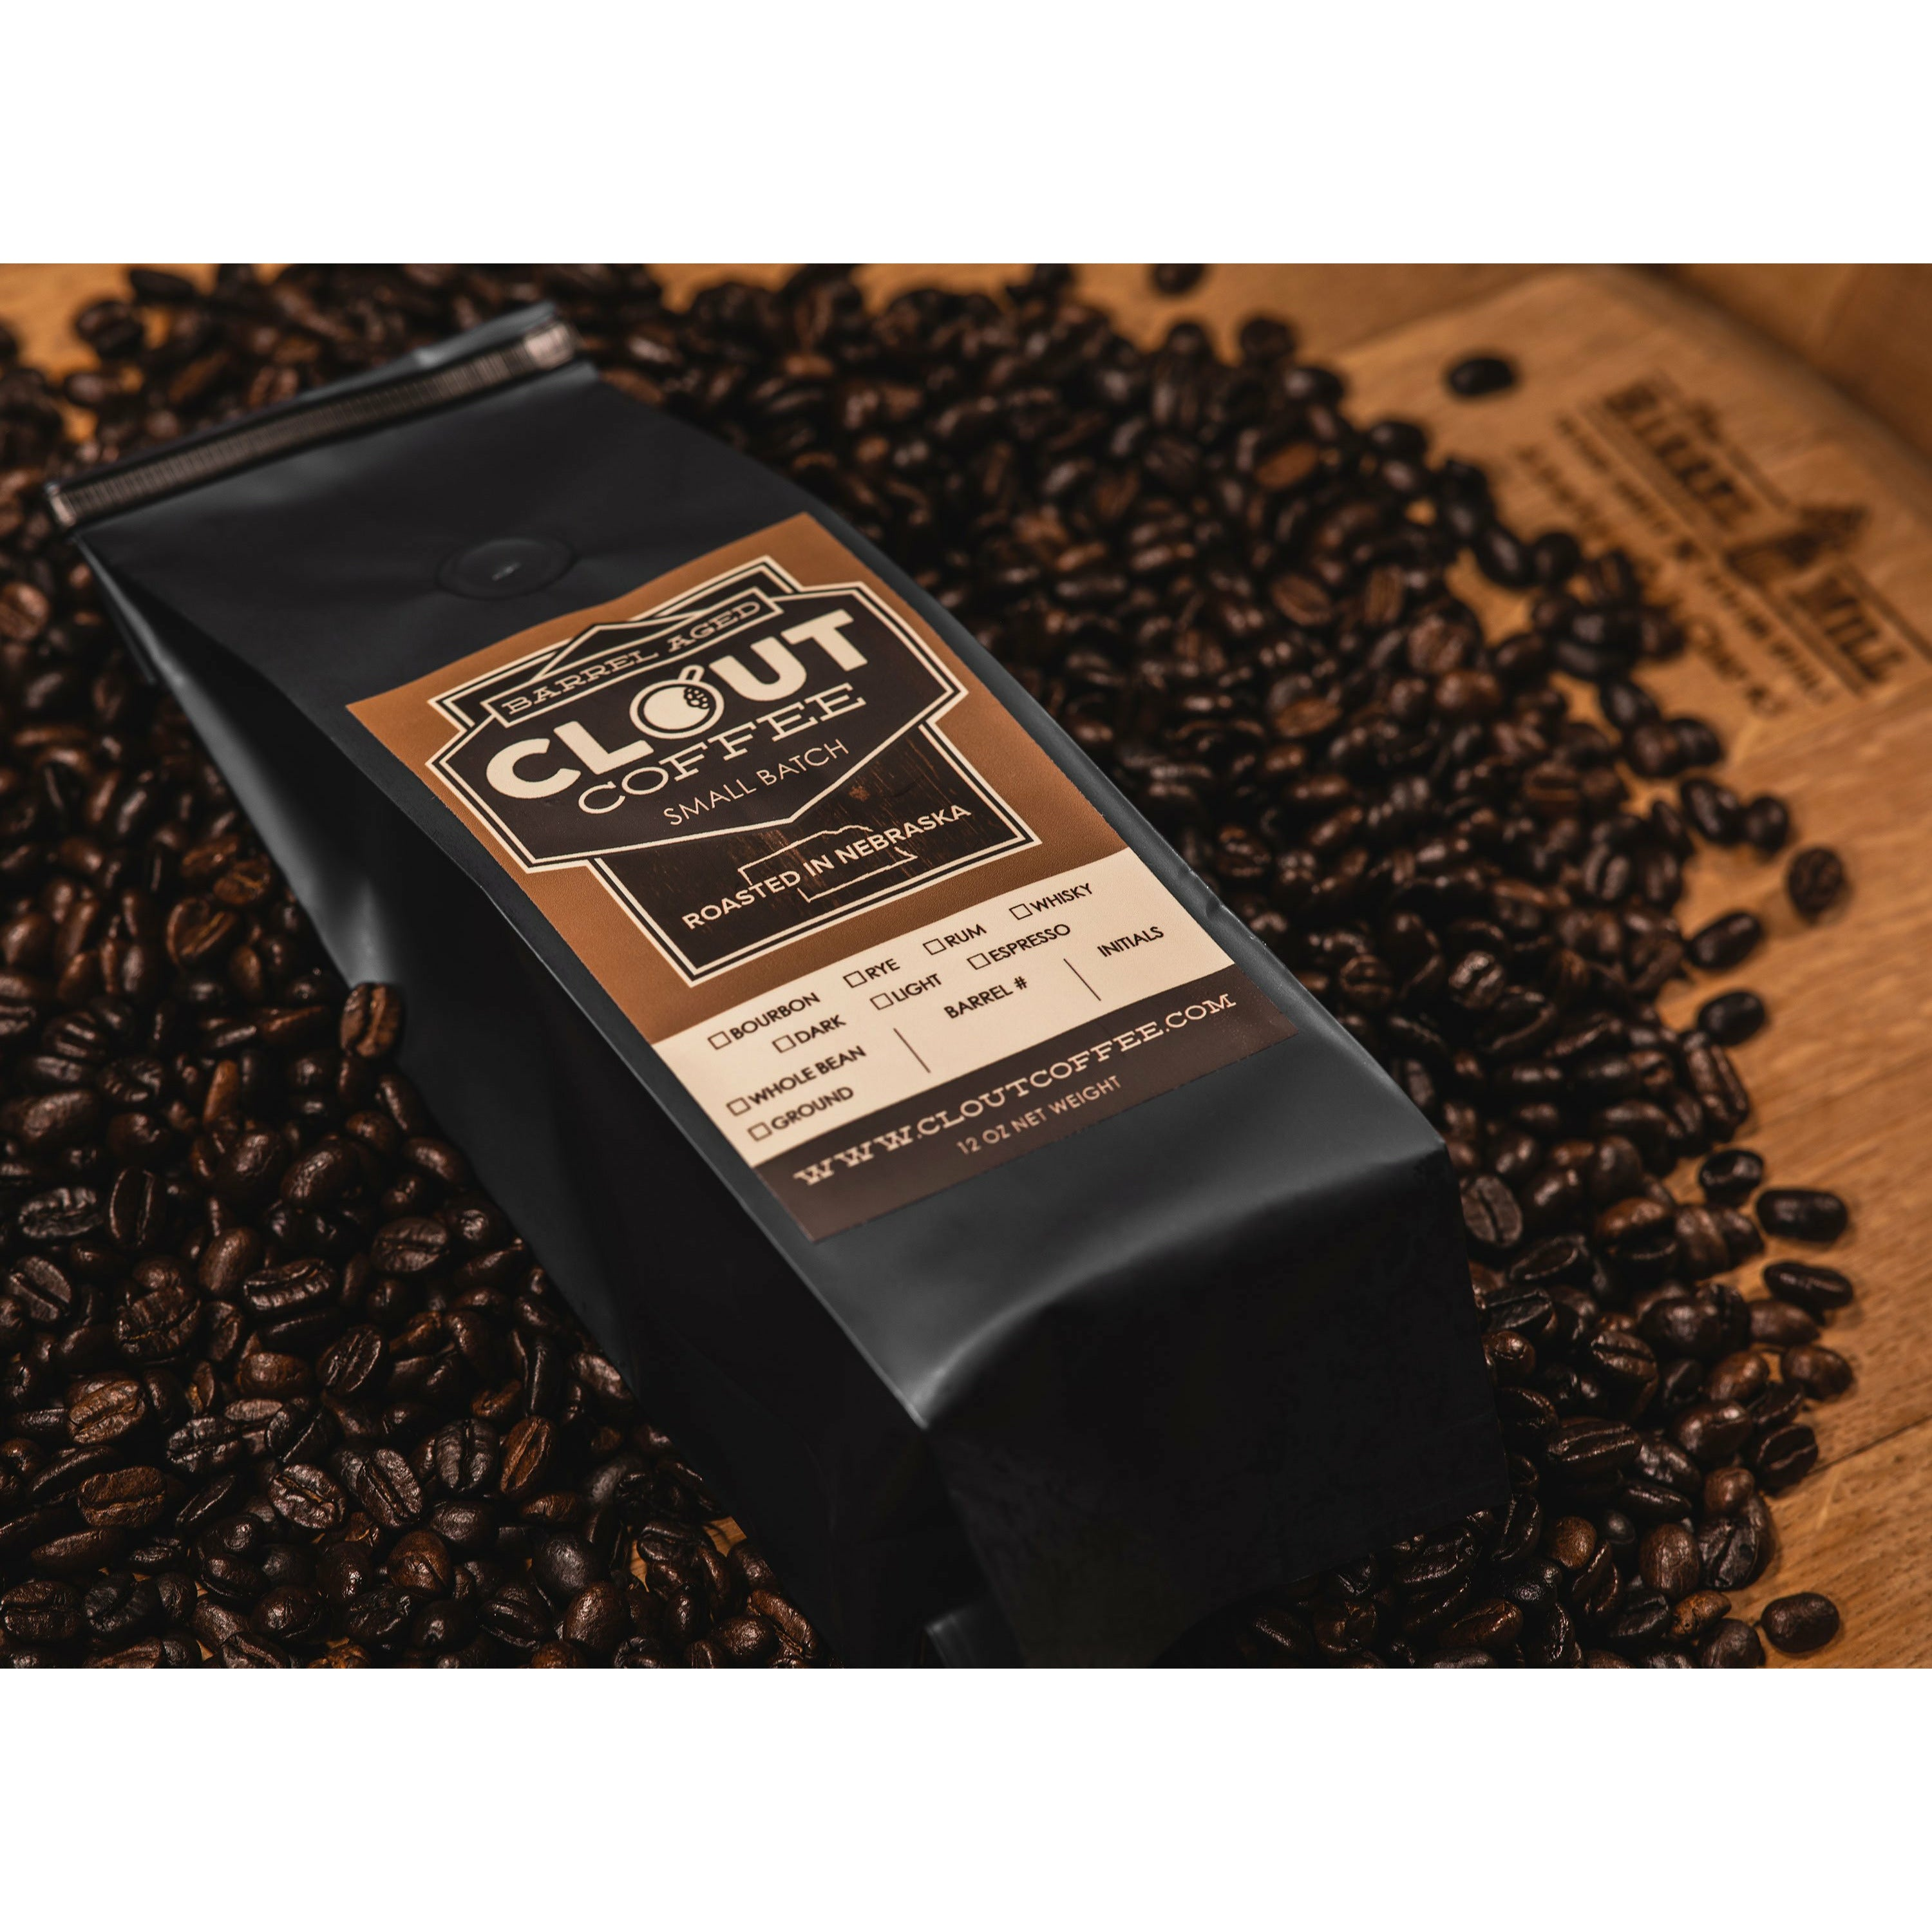 Clout Crate, Bourbon Barrel Aged Coffee Gift Box, 12 Ounce Dark Roast Ground Coffee, 13 Ounce Navy Ceramic Campfire Coffee Mug with Clout Coffee Logo